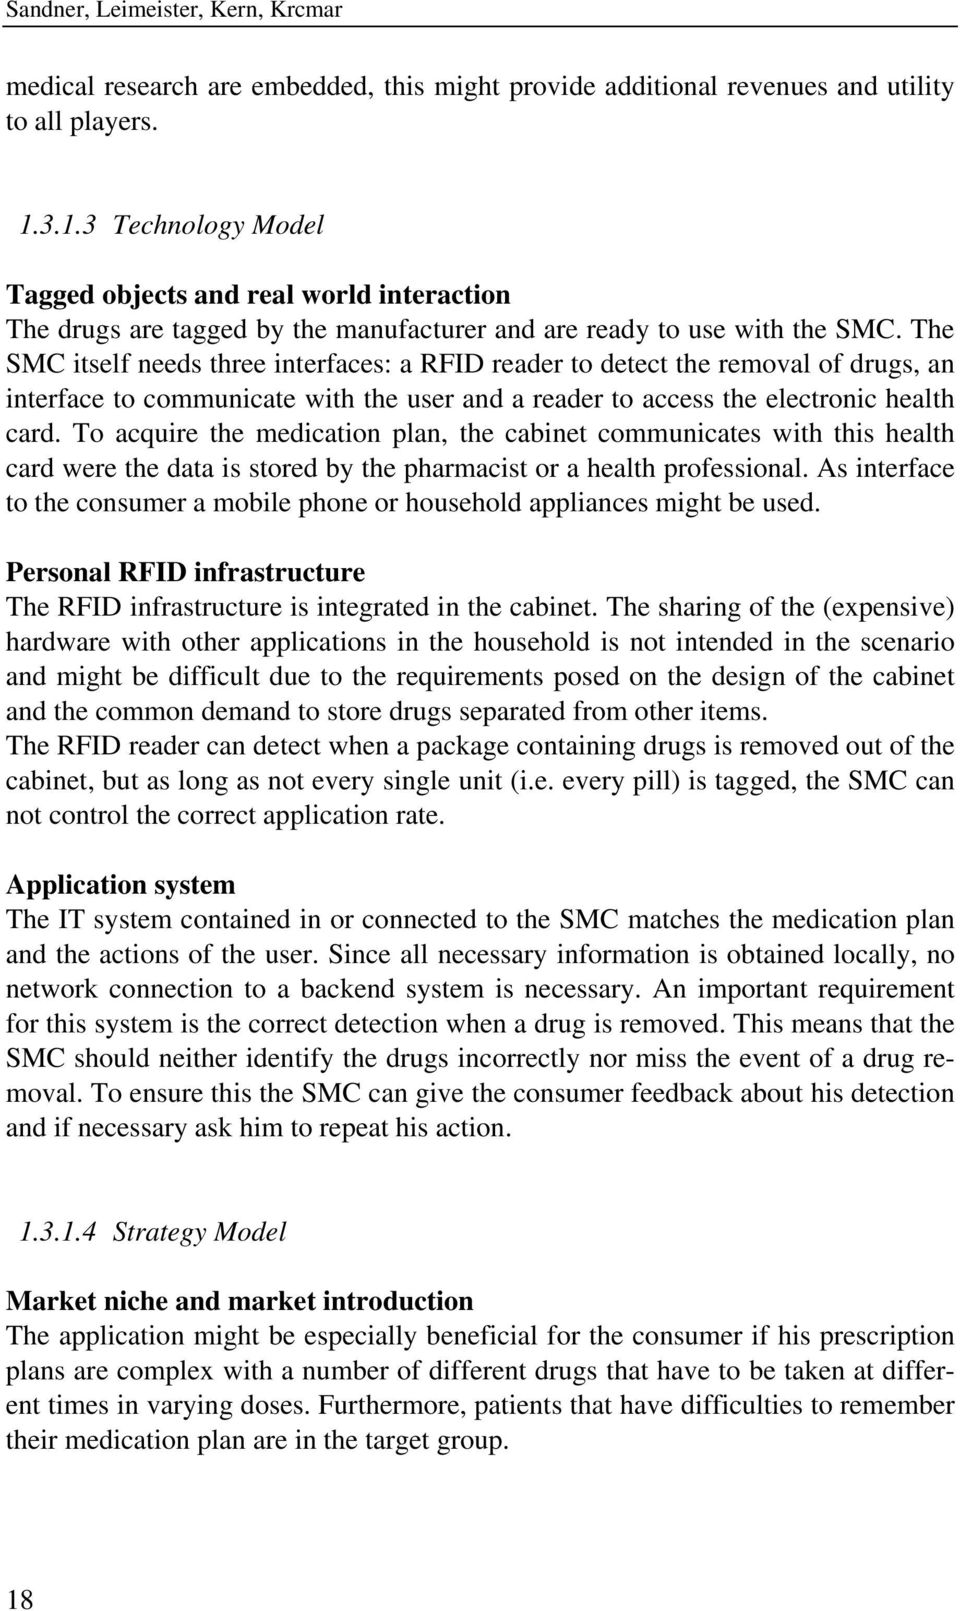 The SMC itself needs three interfaces: a RFID reader to detect the removal of drugs, an interface to communicate with the user and a reader to access the electronic health card.